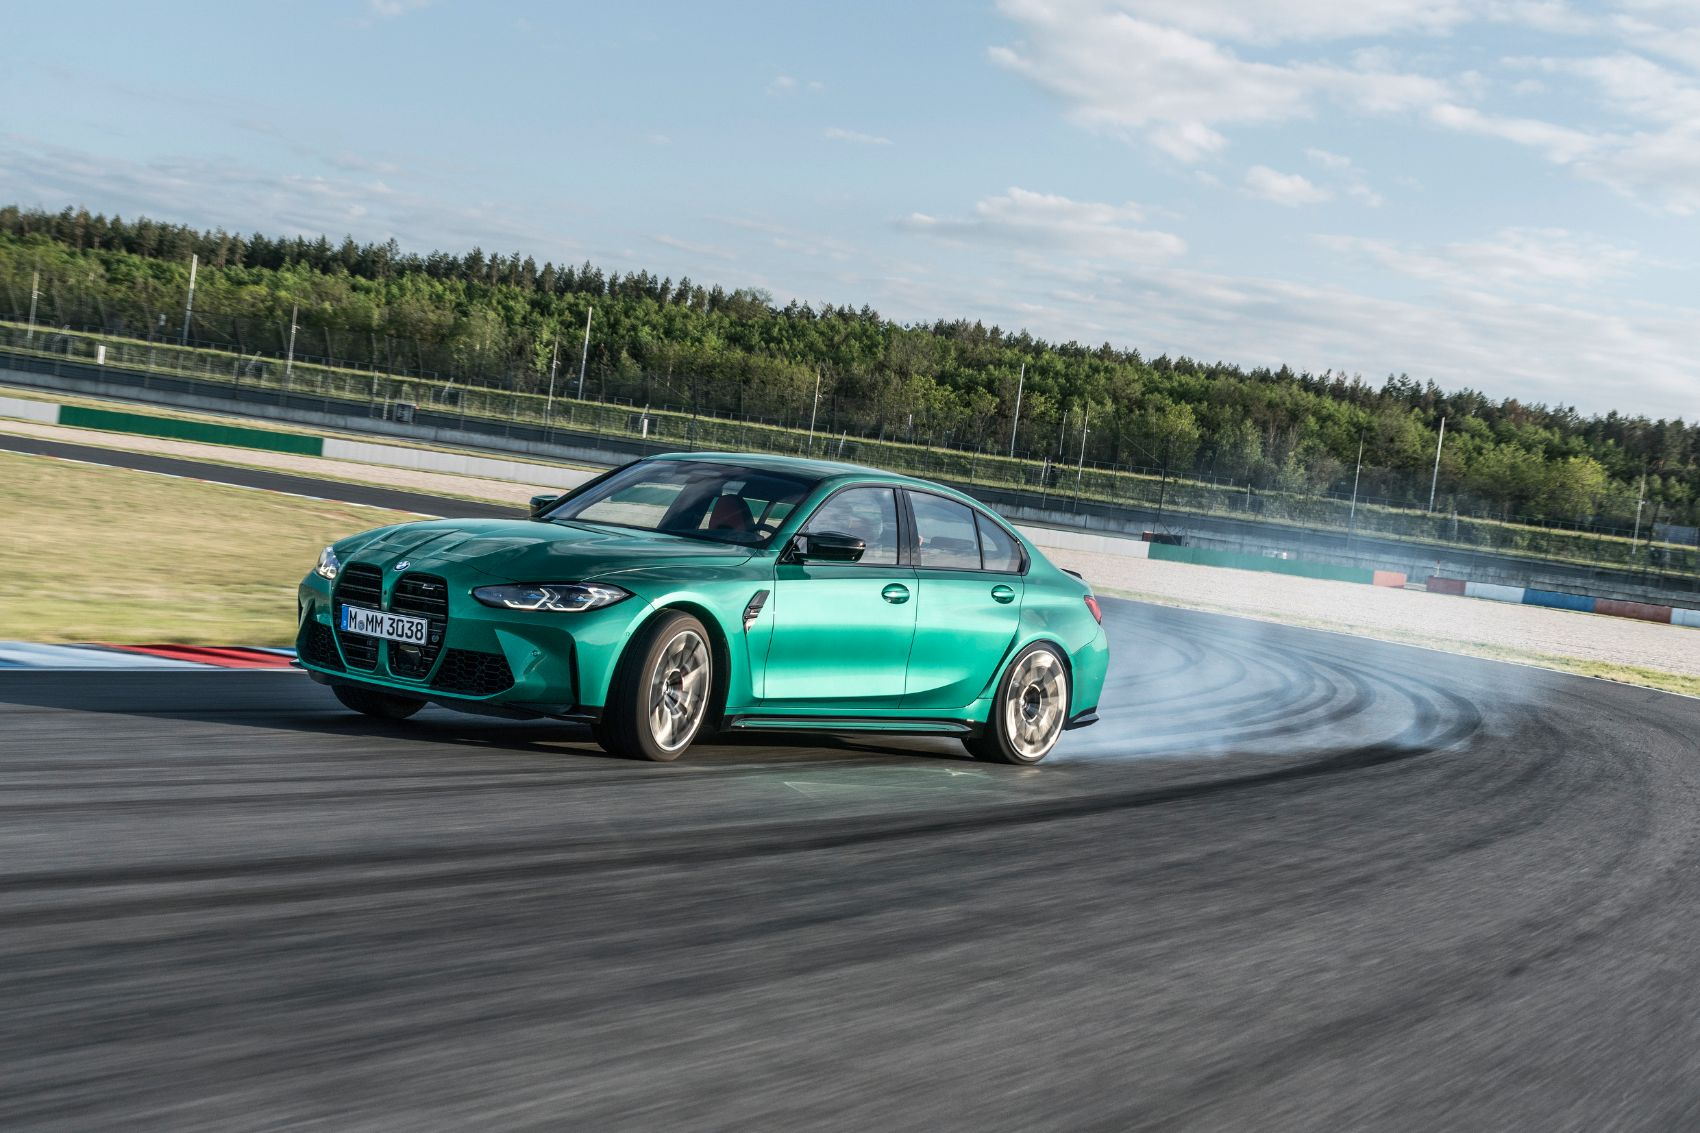 BMW Opens New Driving Experience Program at Indianapolis Motor Speedway